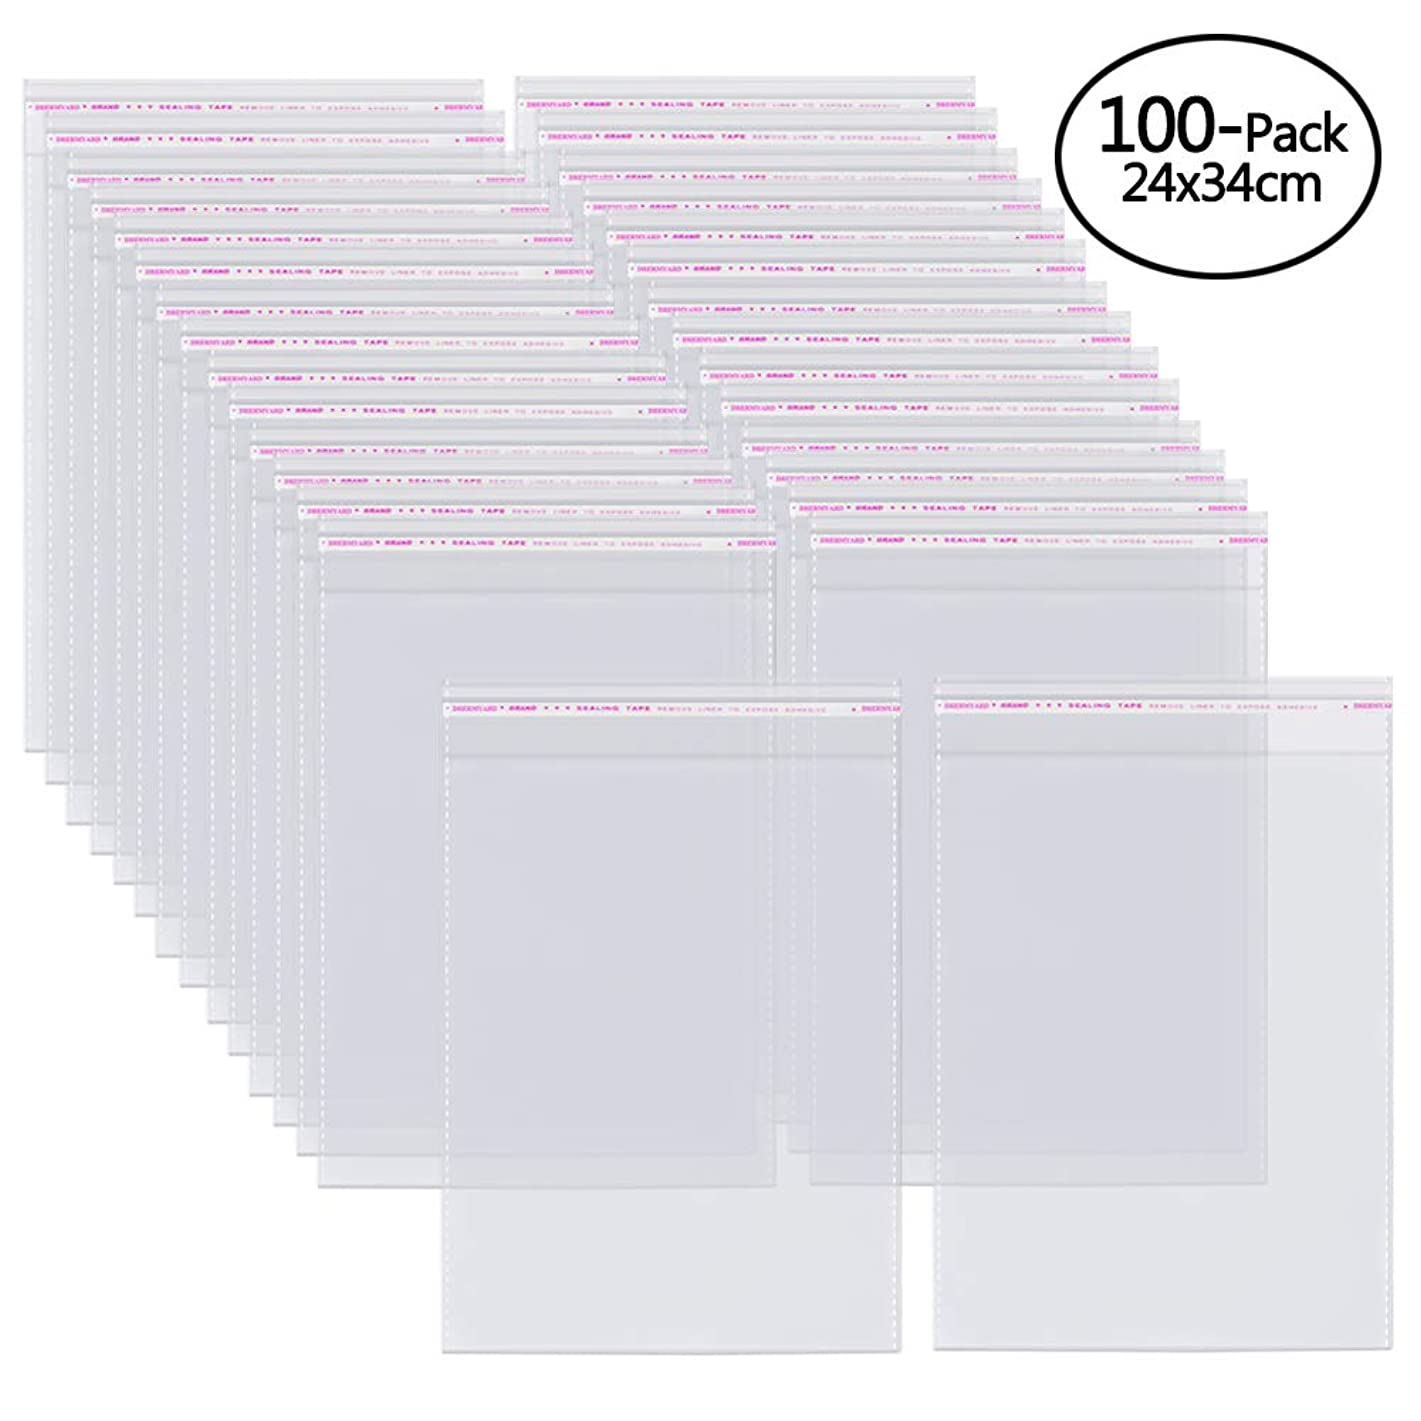 9x13 Inch,100 Pcs Clear Resealable Cello Cellophane OPP Bags Lip and Tape Self Sealing Packaging Bags